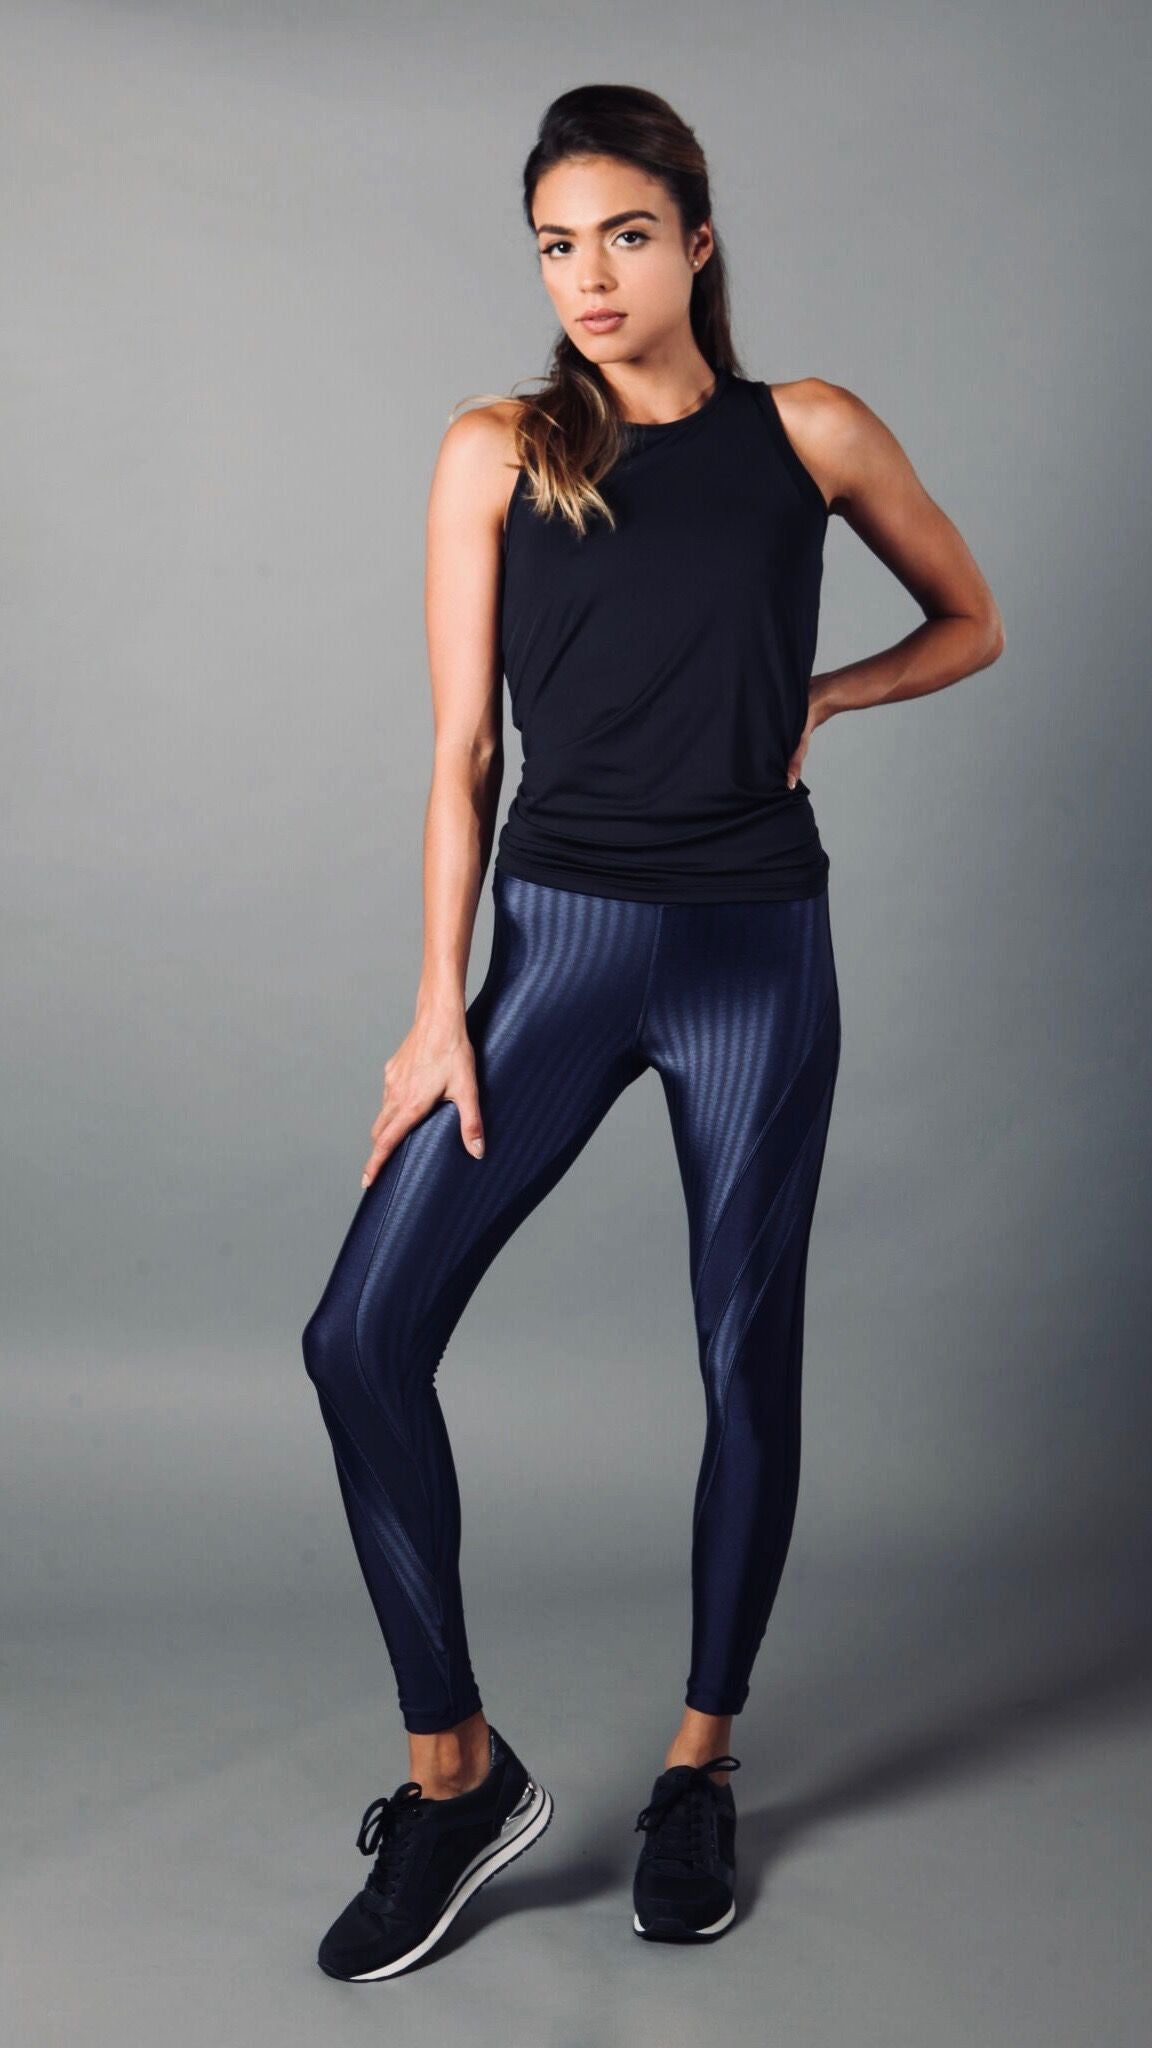 NAVY BLUE IRIS LONG TOP LT1145 - Equilibrium Activewear